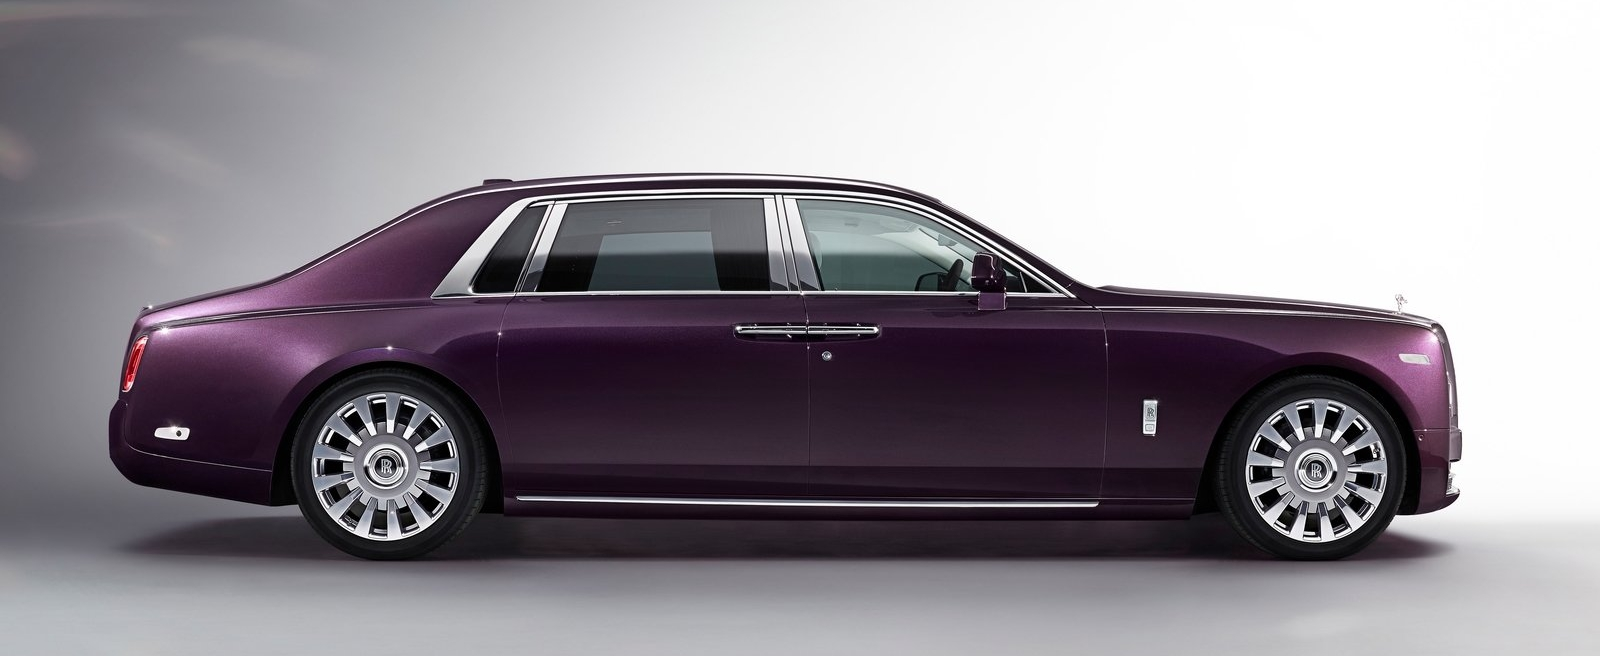 Rolls-Royce Phantom 2018